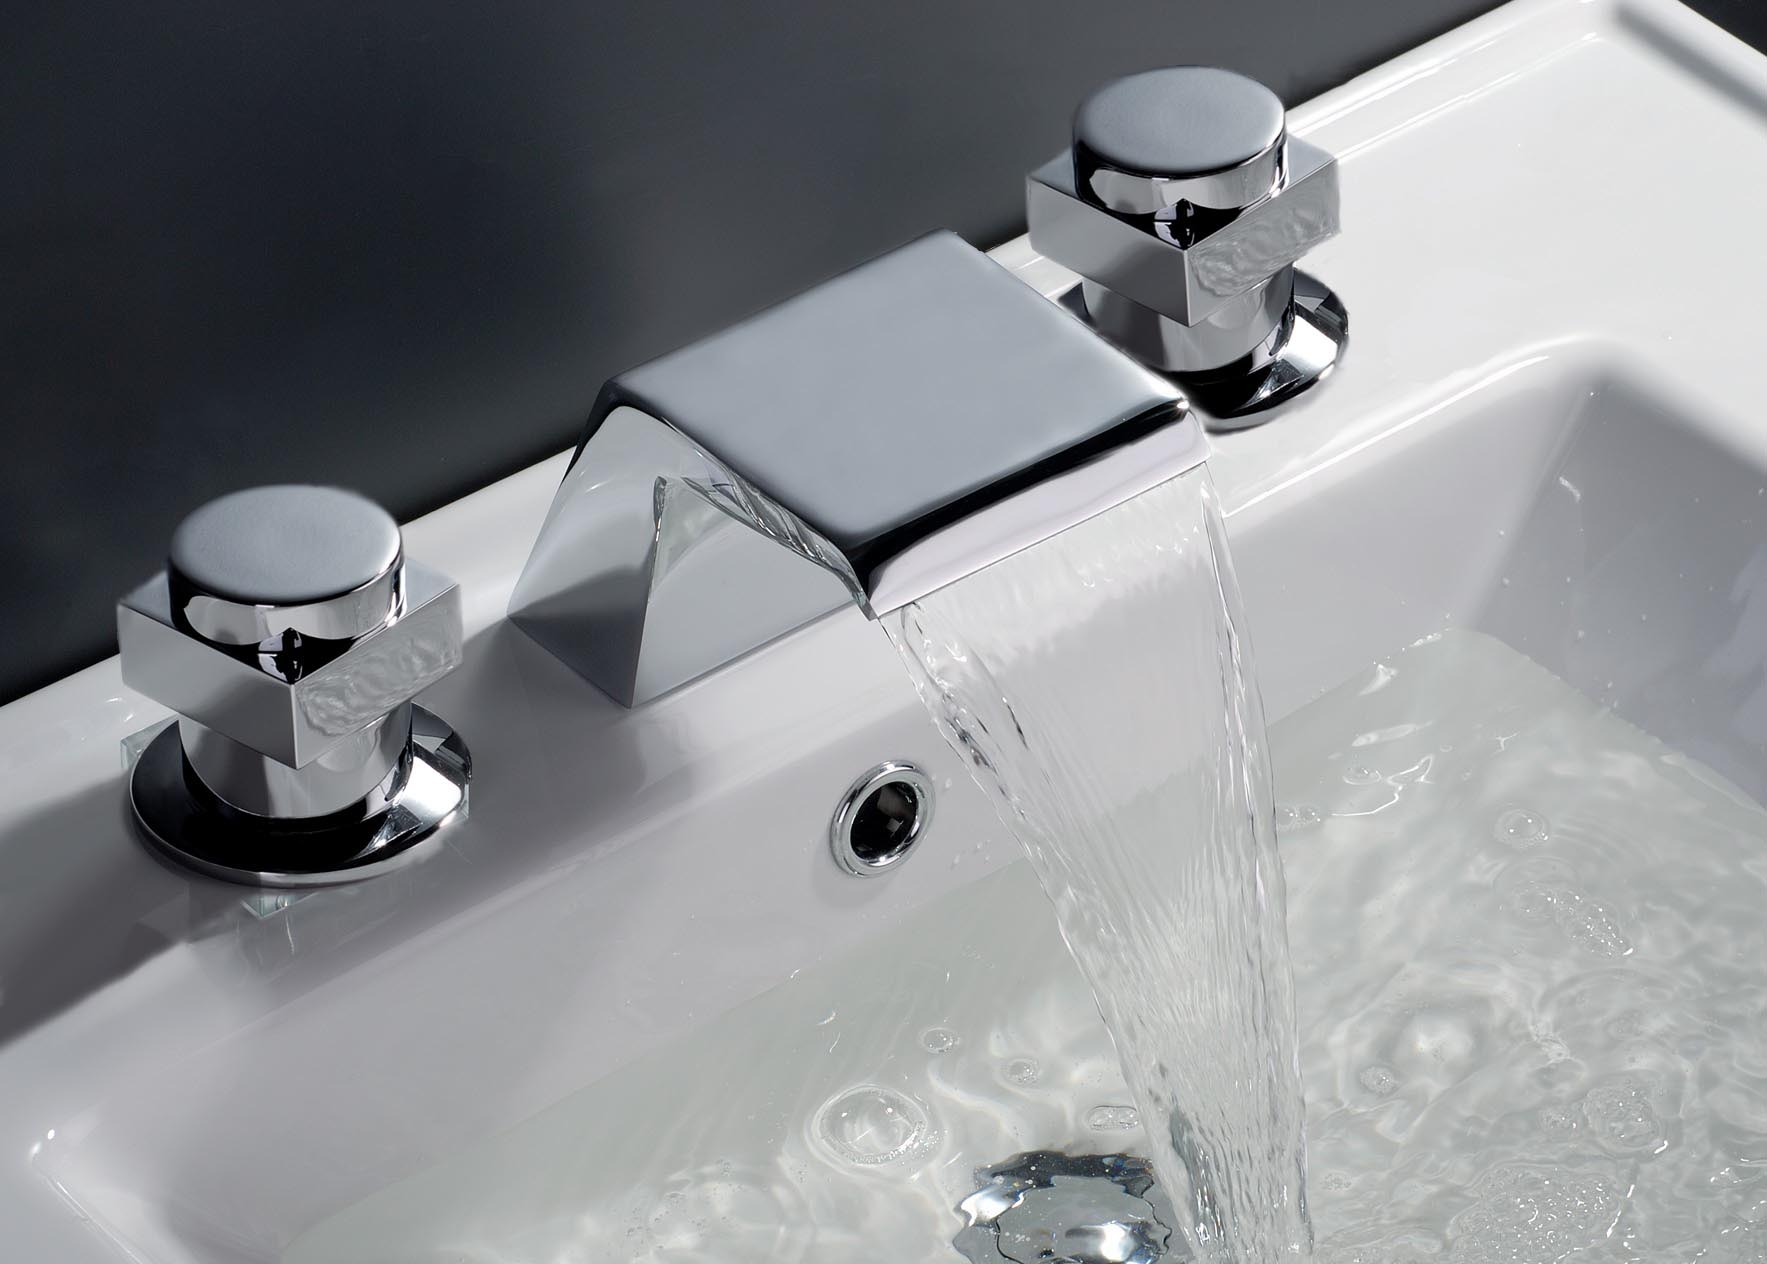 excellent contemporary impressive chrome design sink designer with faucets well faucet images worthy gorgeous finish bathroom waterfall ideas decor for